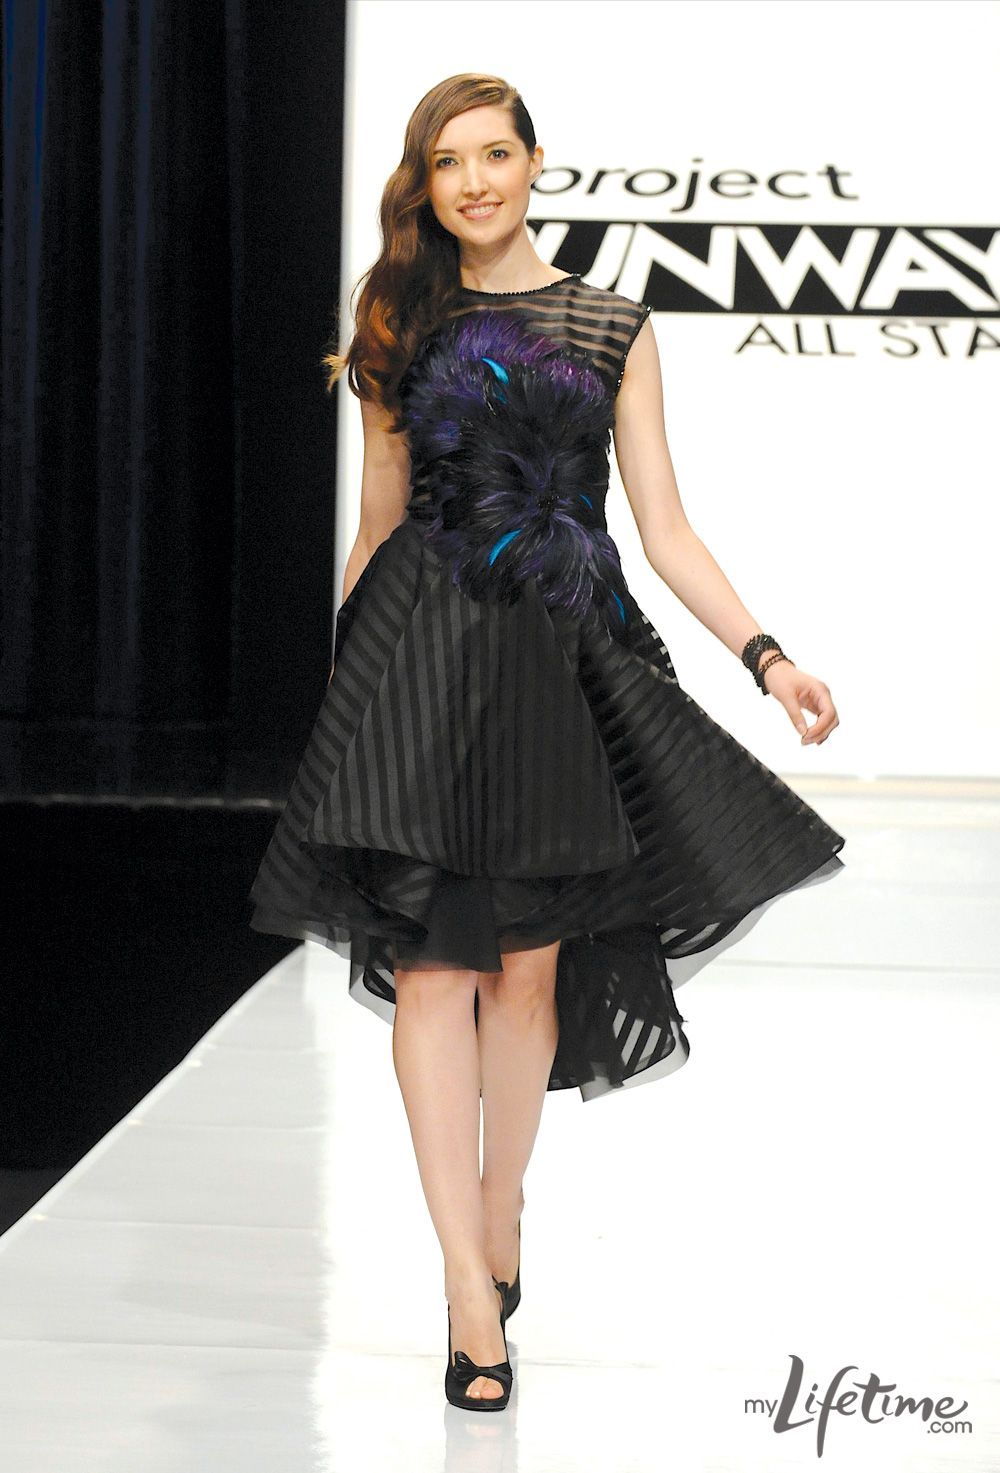 I Love This Dress From Project Runway All Stars Anthony